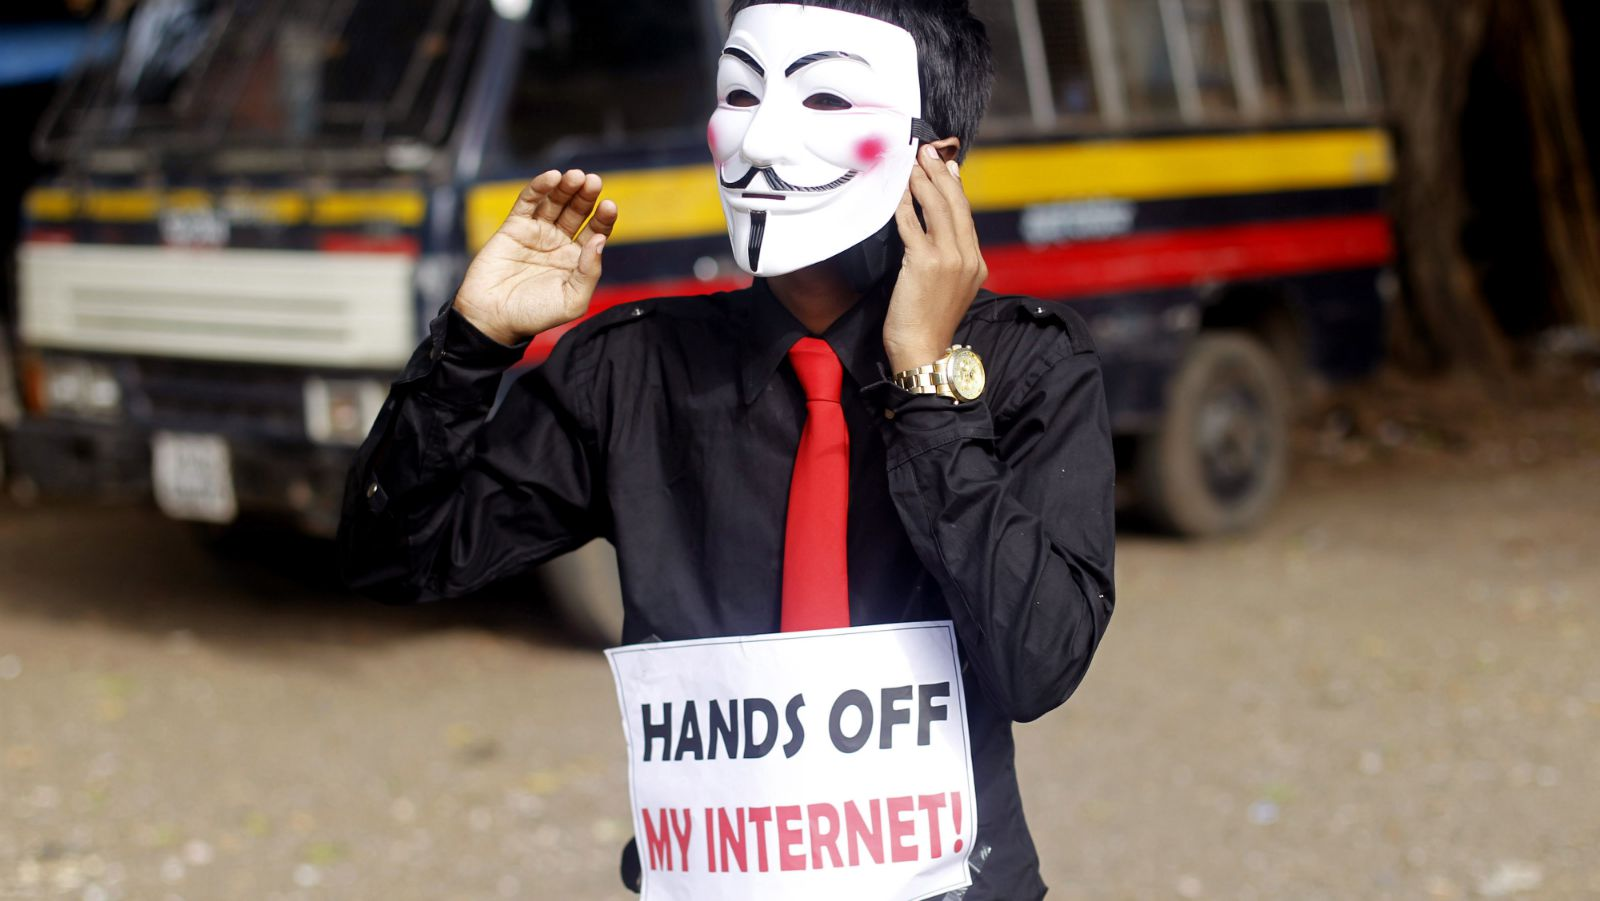 A member of a hacking group, Anonymous India, wears Guy Fawkes mask as he protests against Indian government enacted laws that gives it power to censor different aspects of Internet usage, in Mumbai, India, Saturday, June 9, 2012. The Indian hacker group is a spinoff of Anonymous, an amorphous group of activists, hackers and pranksters whose past targets have included Visa and MasterCard.